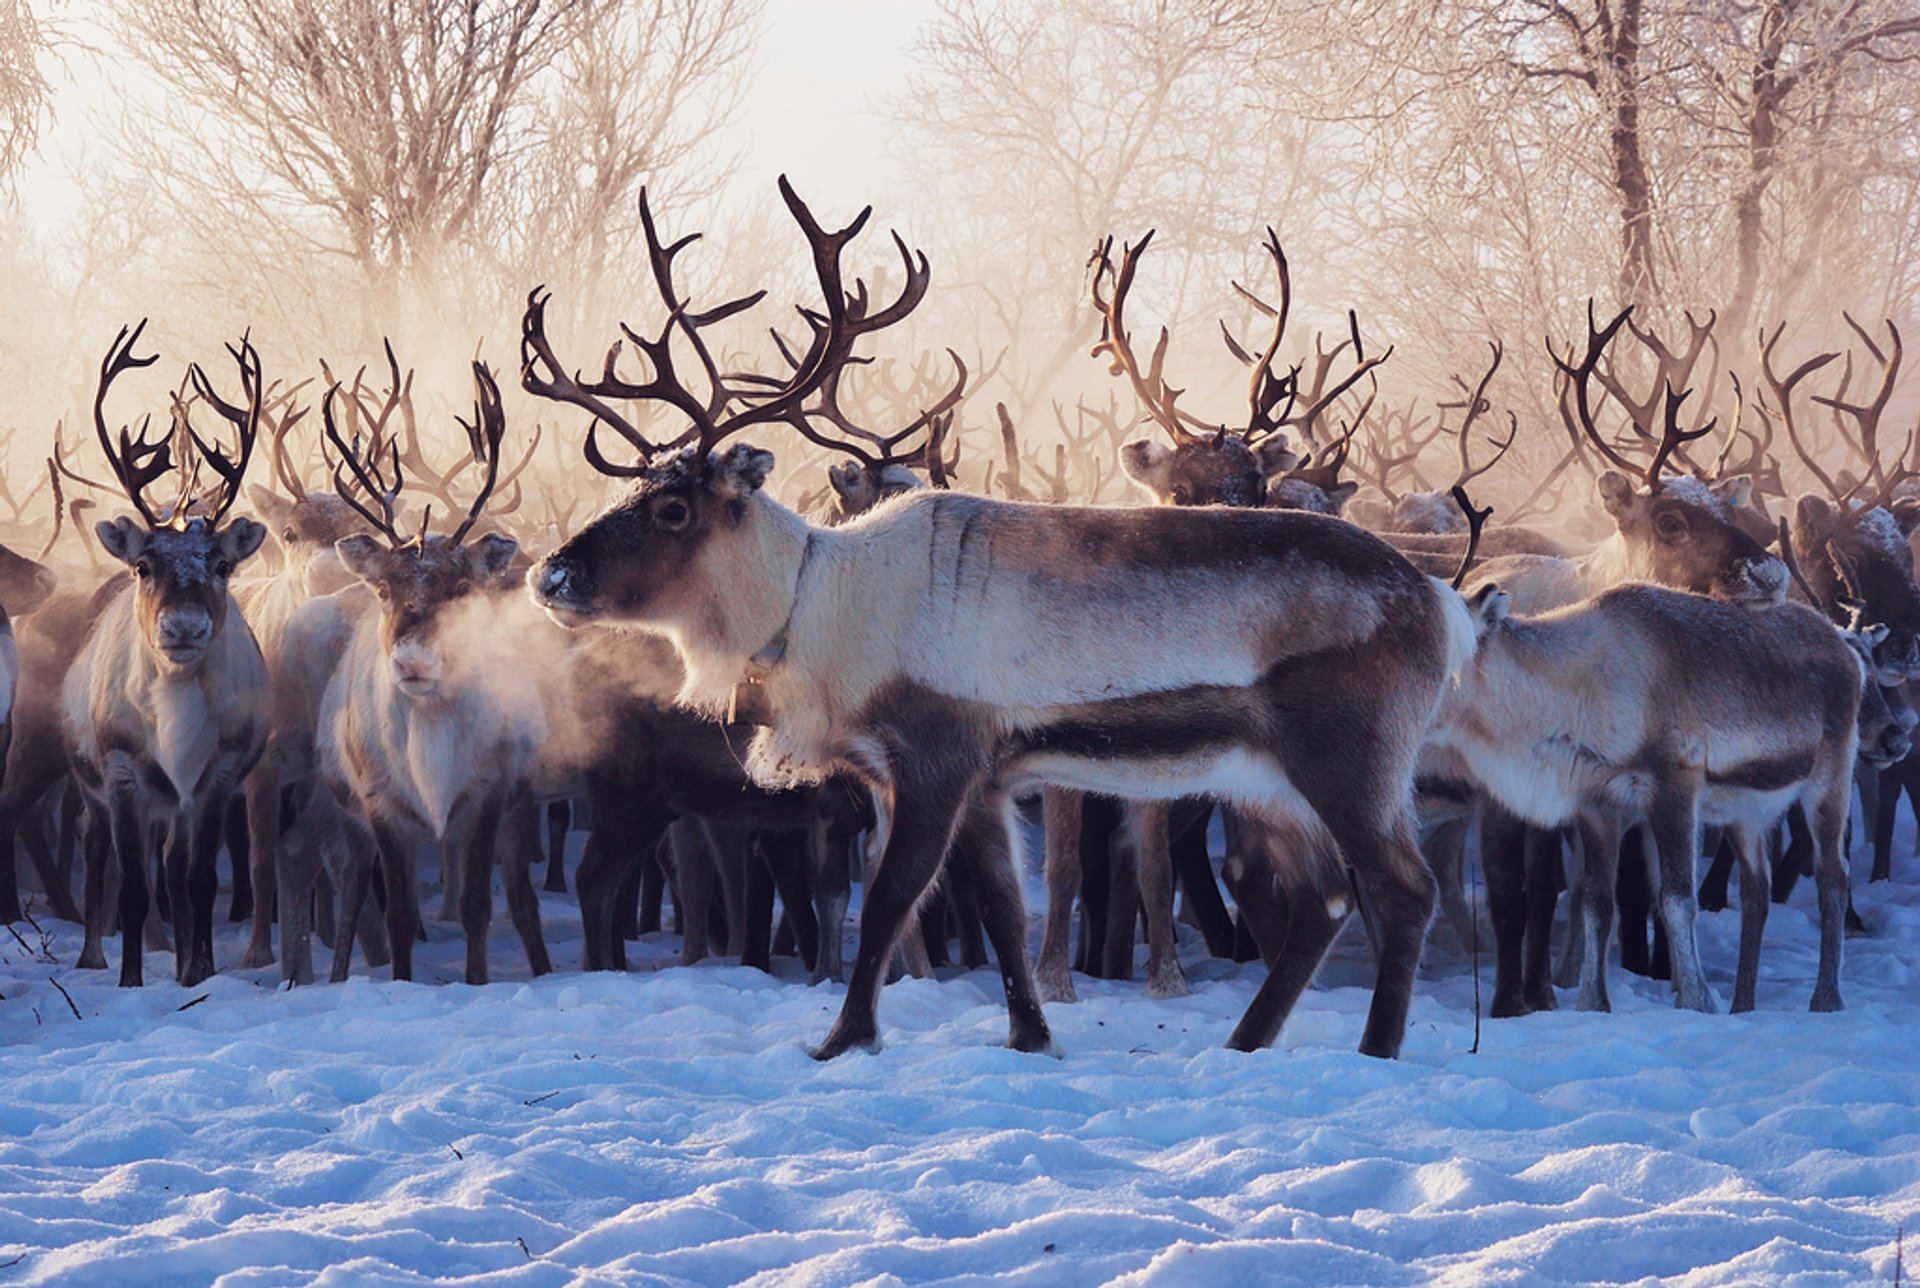 Reindeer Migration in Norway 2020 - Best Time